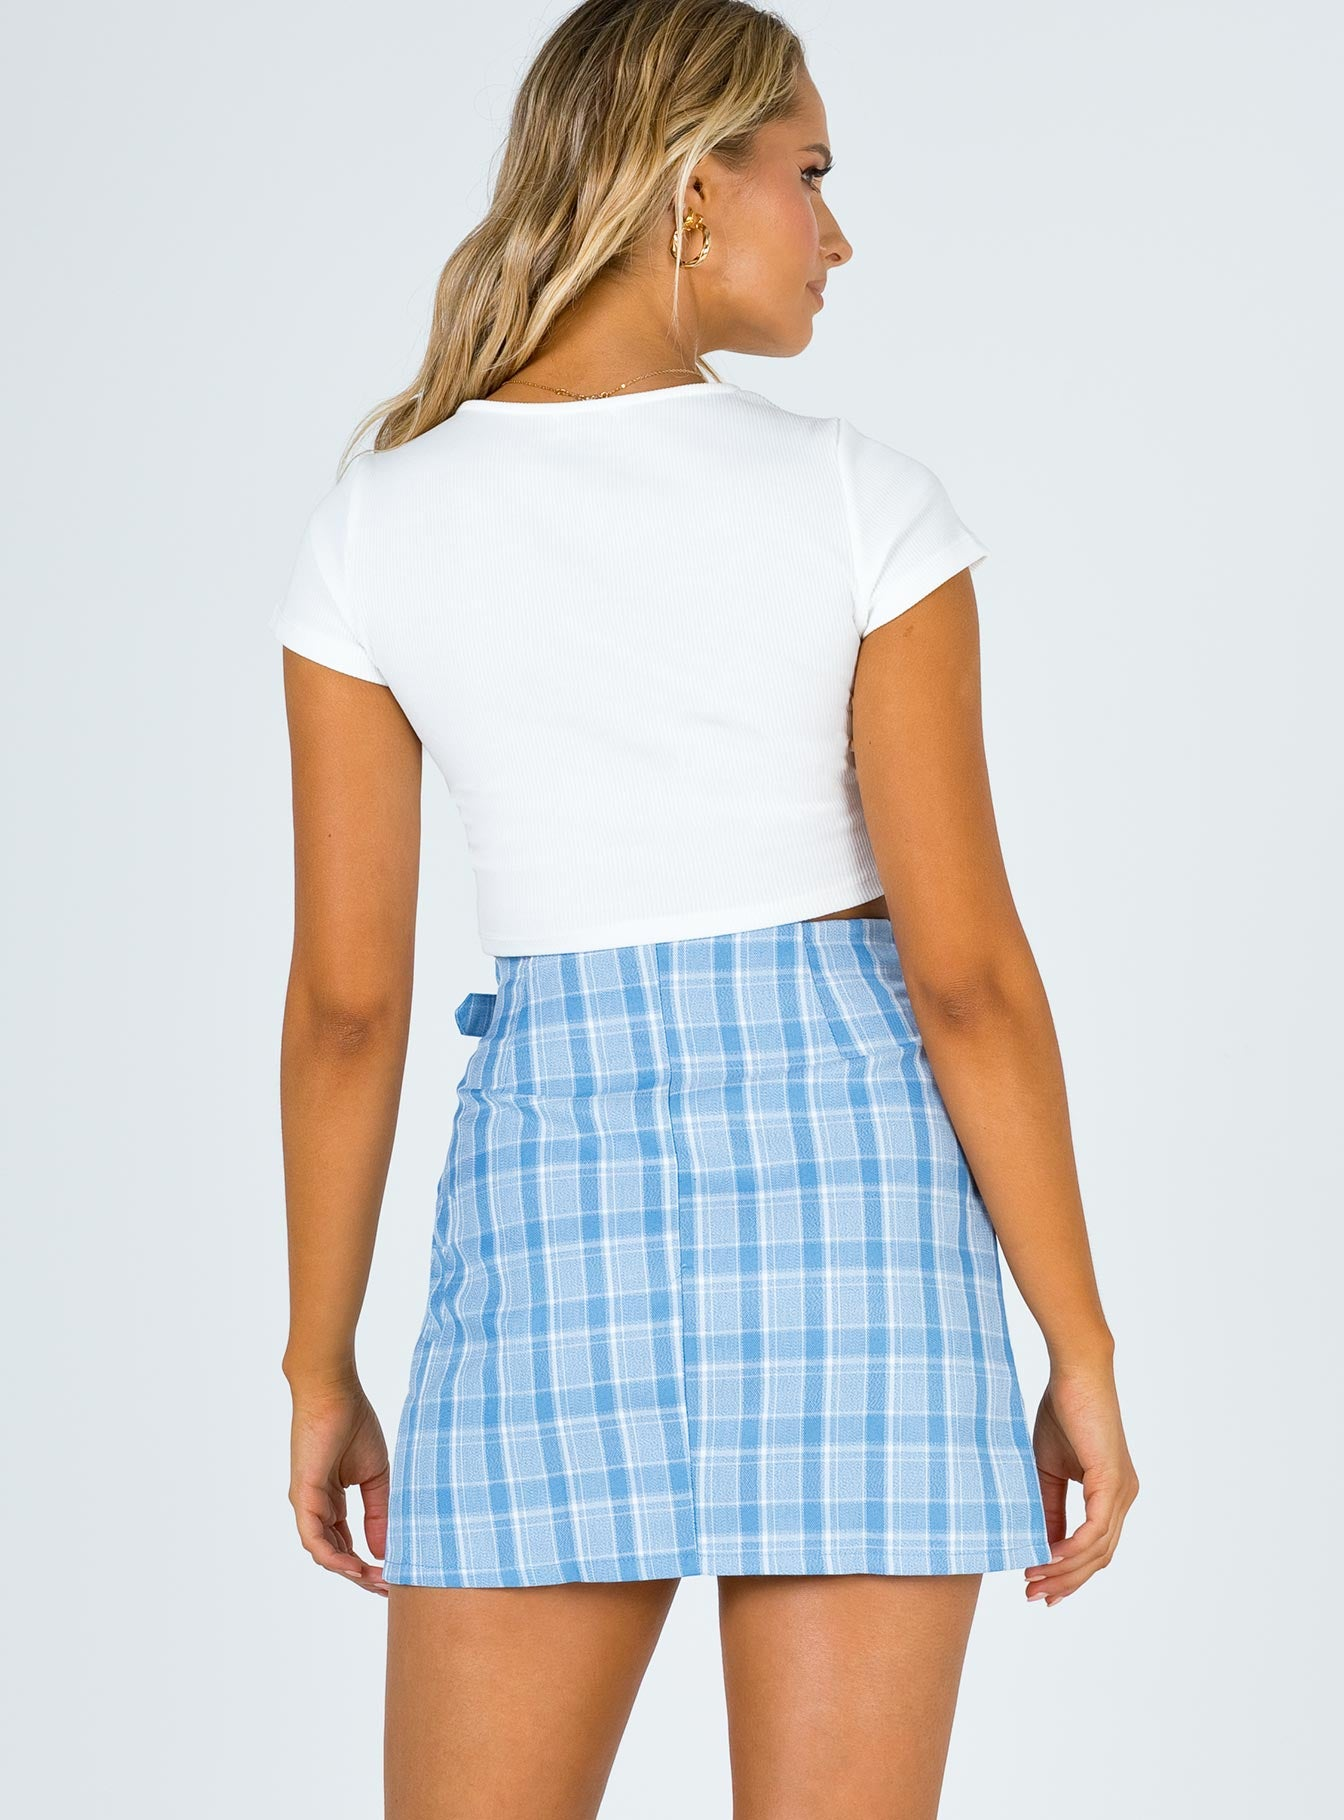 Madoc Mini Skirt